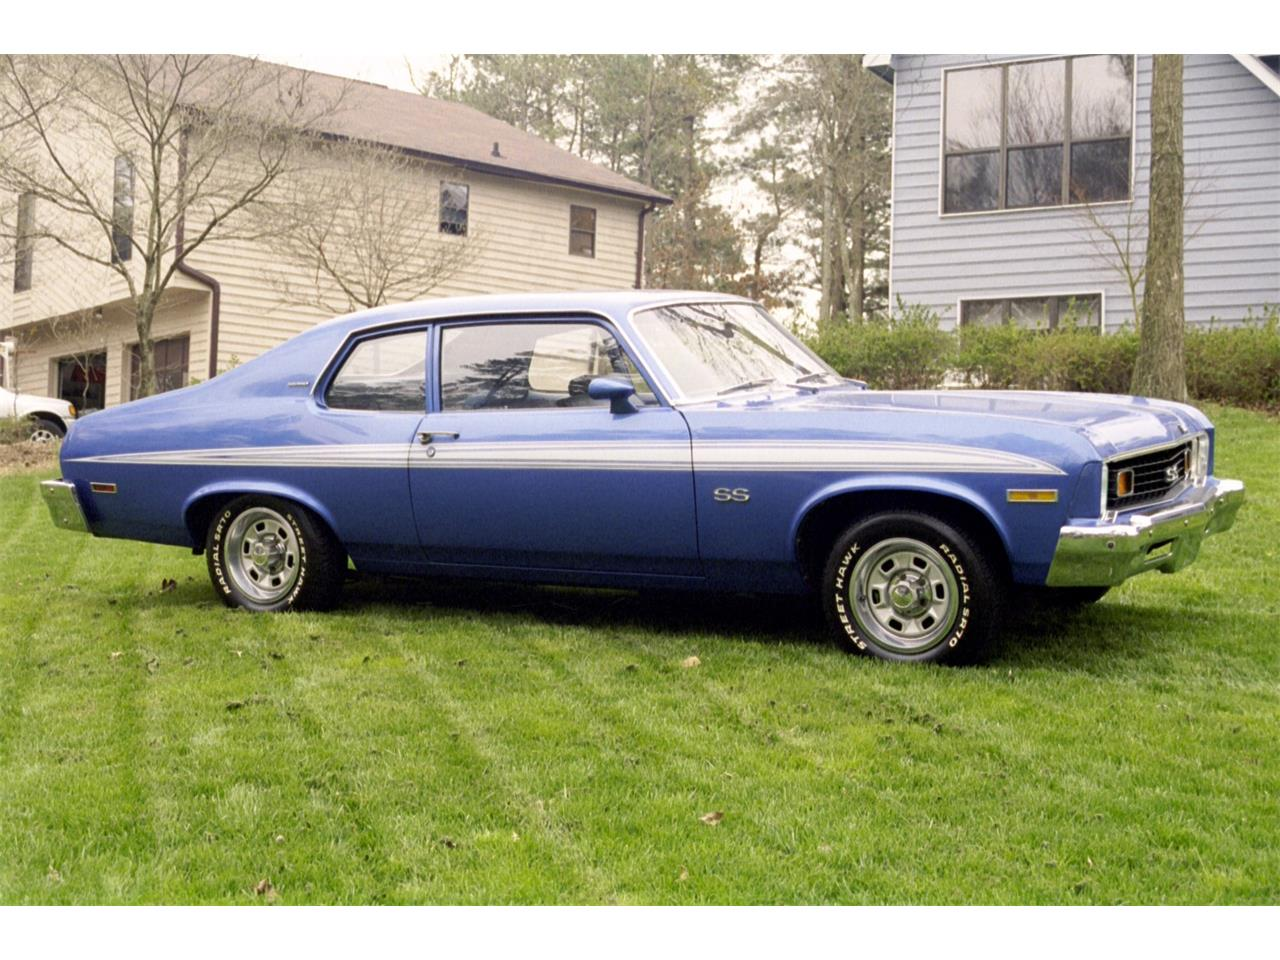 Large Picture of '73 Chevrolet Nova SS  located in Roswell Georgia - $17,000.00 Offered by a Private Seller - LCH6